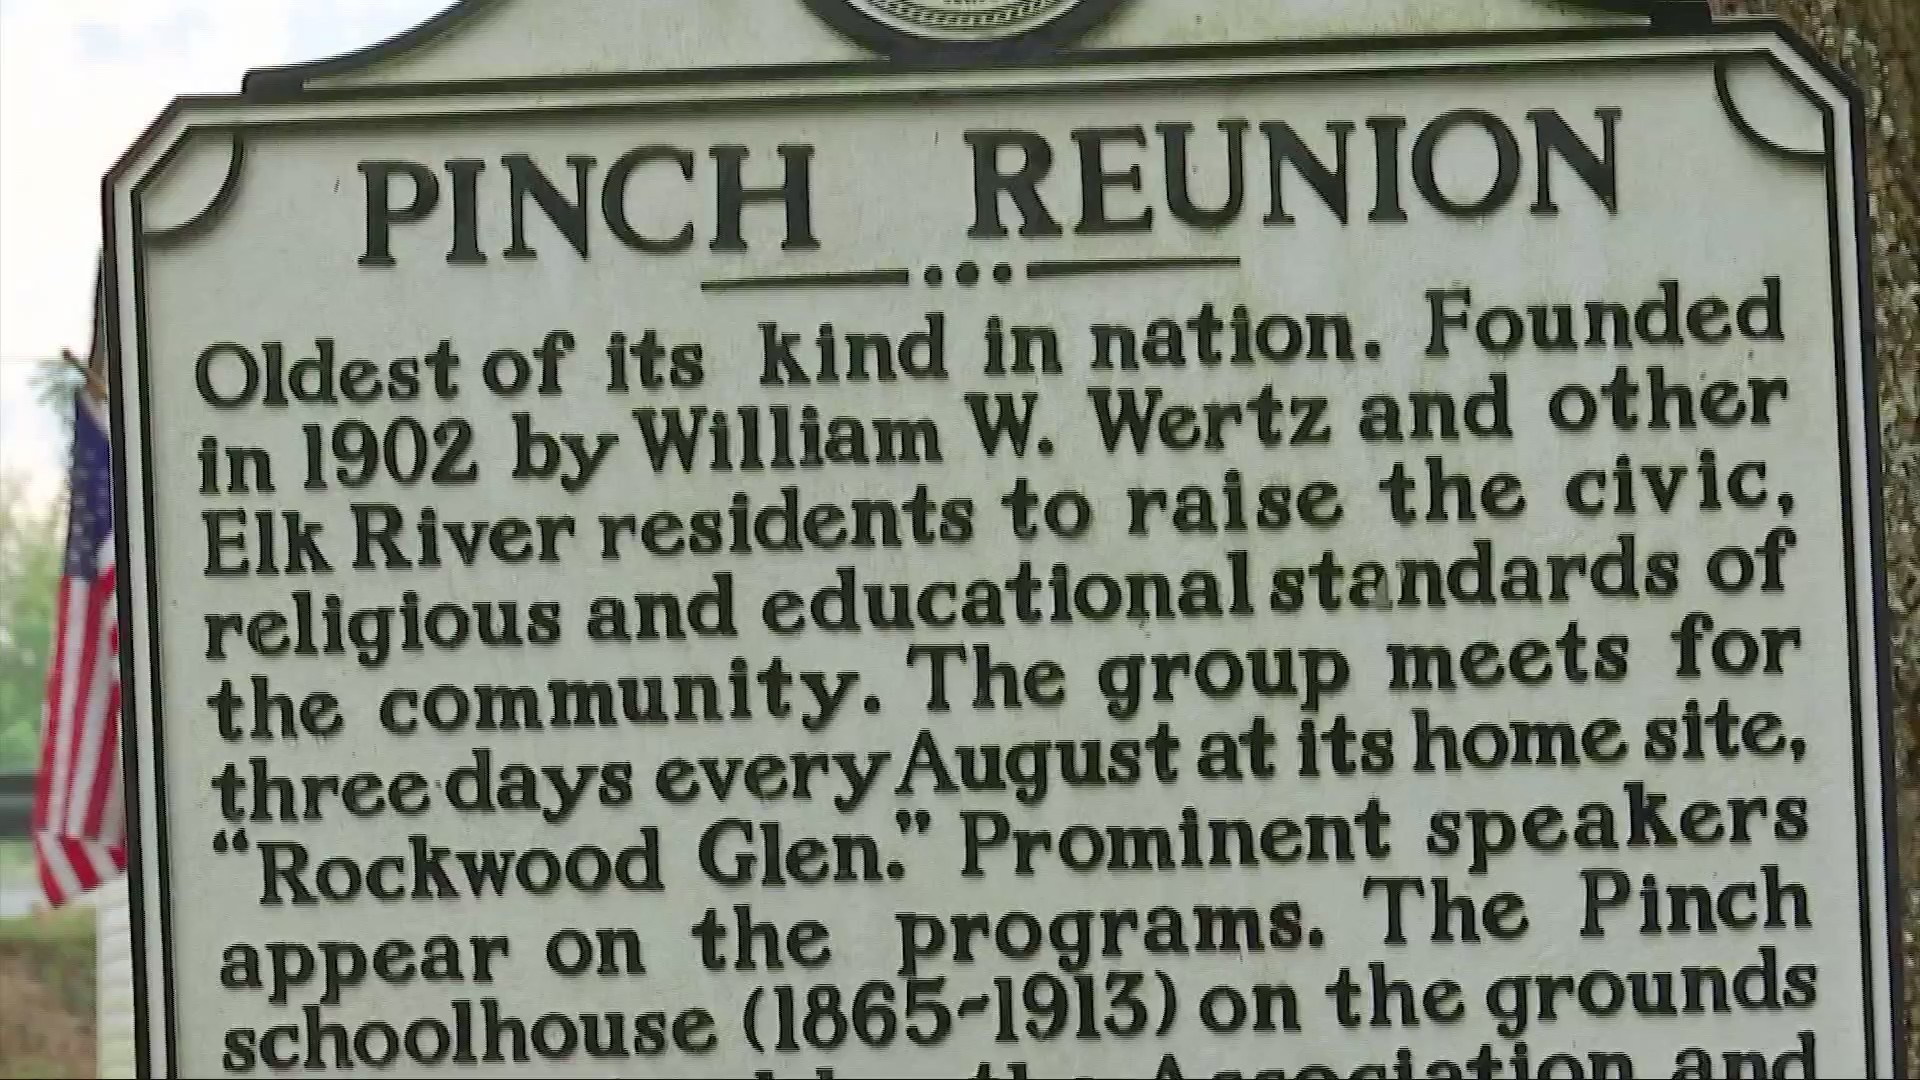 Pinch Community Reunion Marks 117 Years of Fun